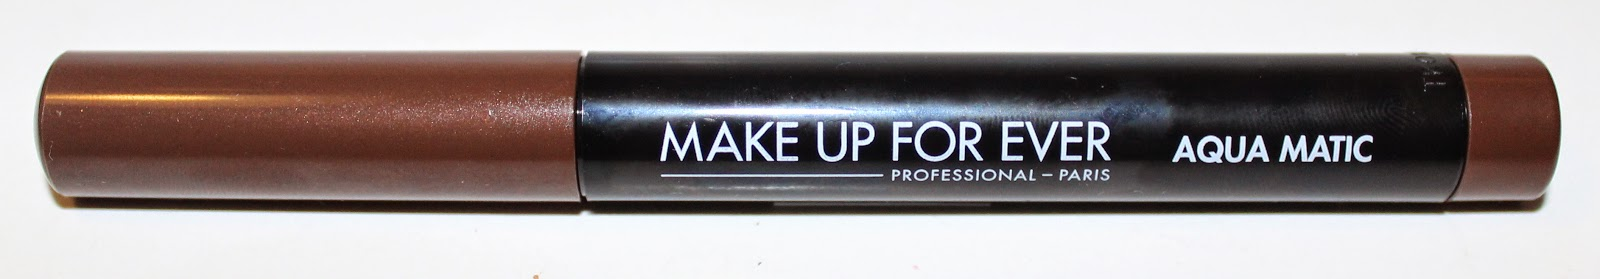 MAKE UP FOR EVER Aqua Matic #S-60 Satiny Warm Brown Review